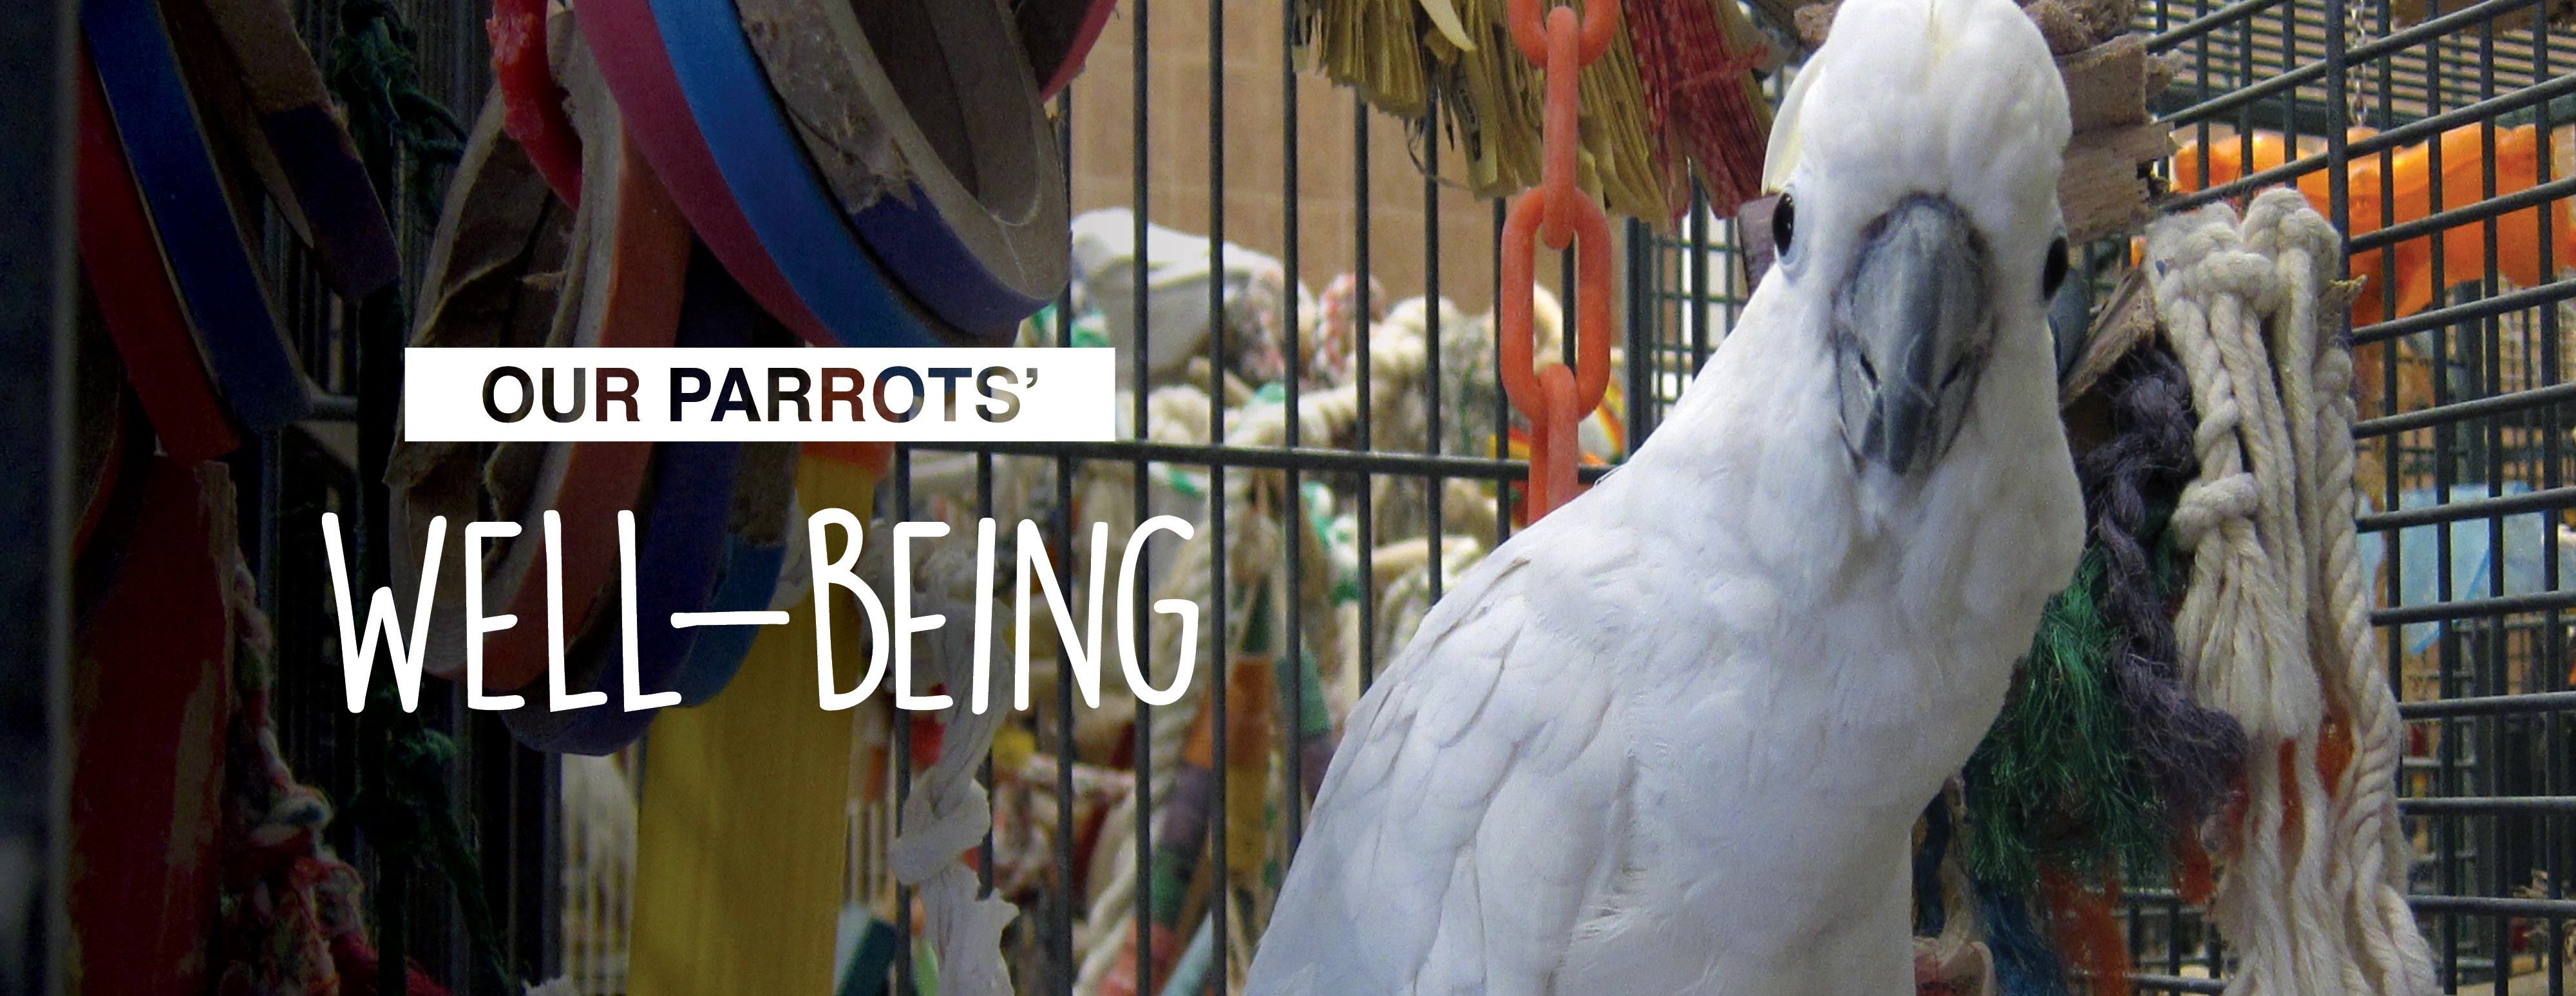 Parrots' Well-Being